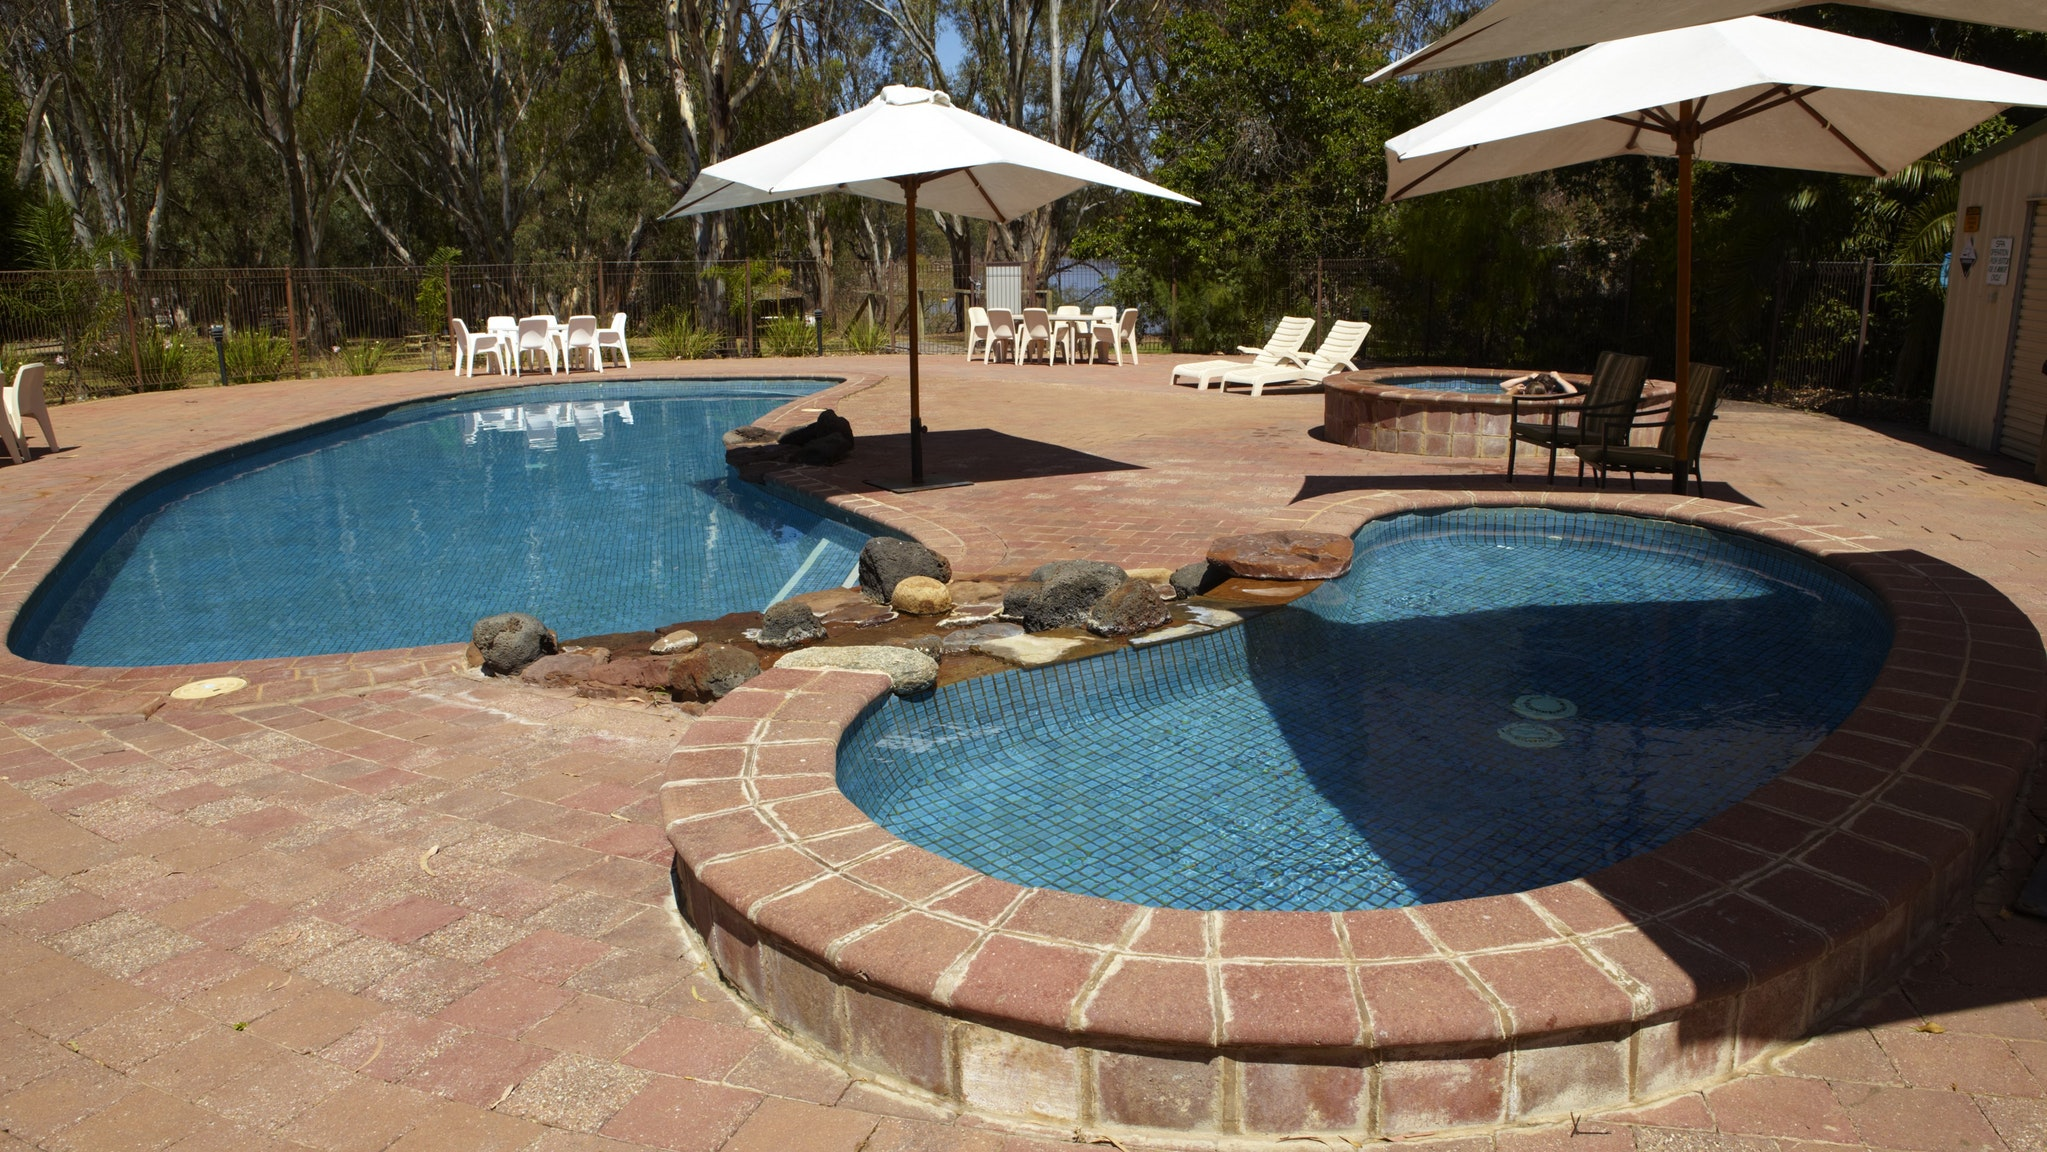 Relax and enjoy the pool and spa